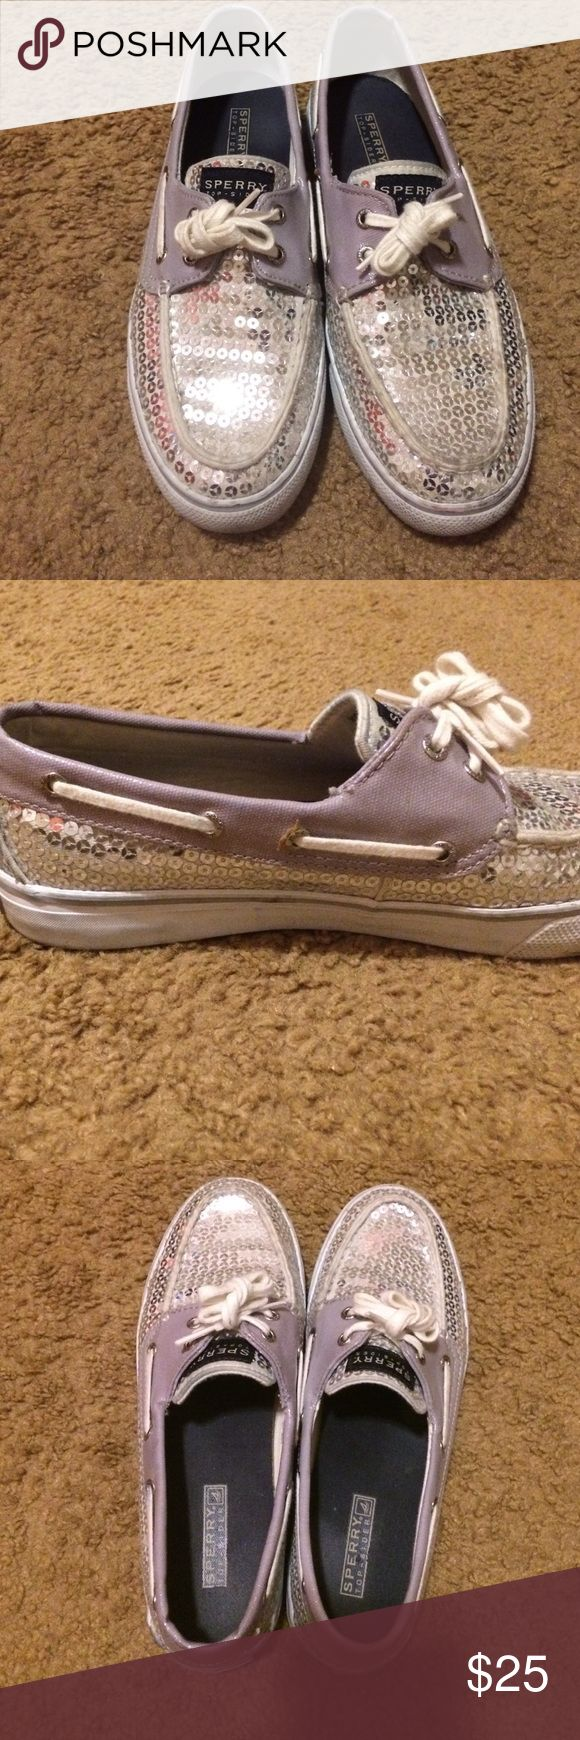 EUC Sperry Top Siders Silver sequined Sperry's size 8 1/2 only worn 2 or 3 times. Sperry Top-Sider Shoes Flats & Loafers